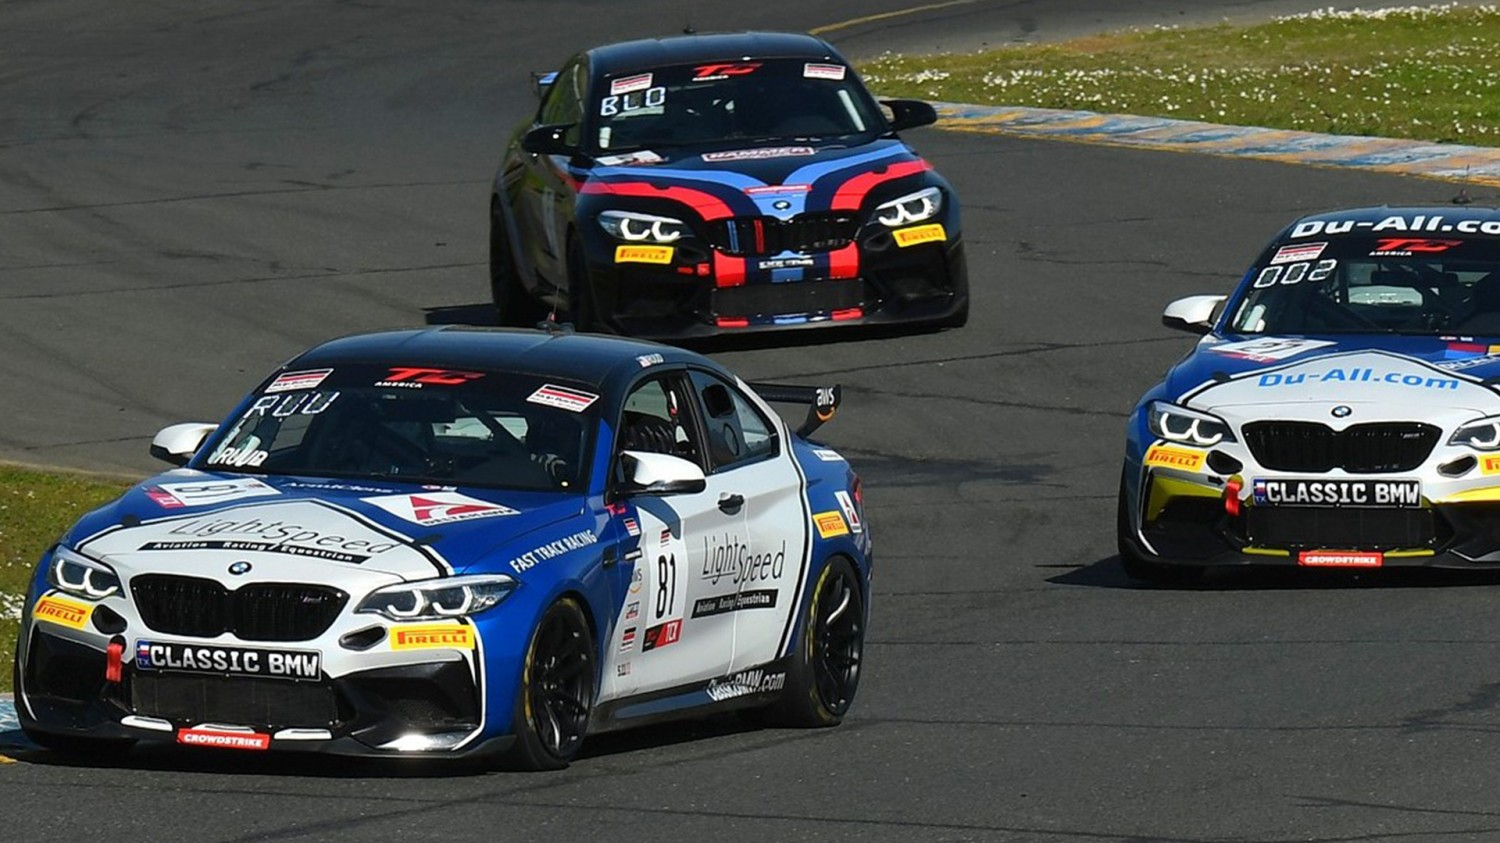 Ruud Debuts in TCX Class with Double BMW M2 Cup Wins at Sonoma This Weekend for Fast Track Racing/Classic BMW in SRO Opener